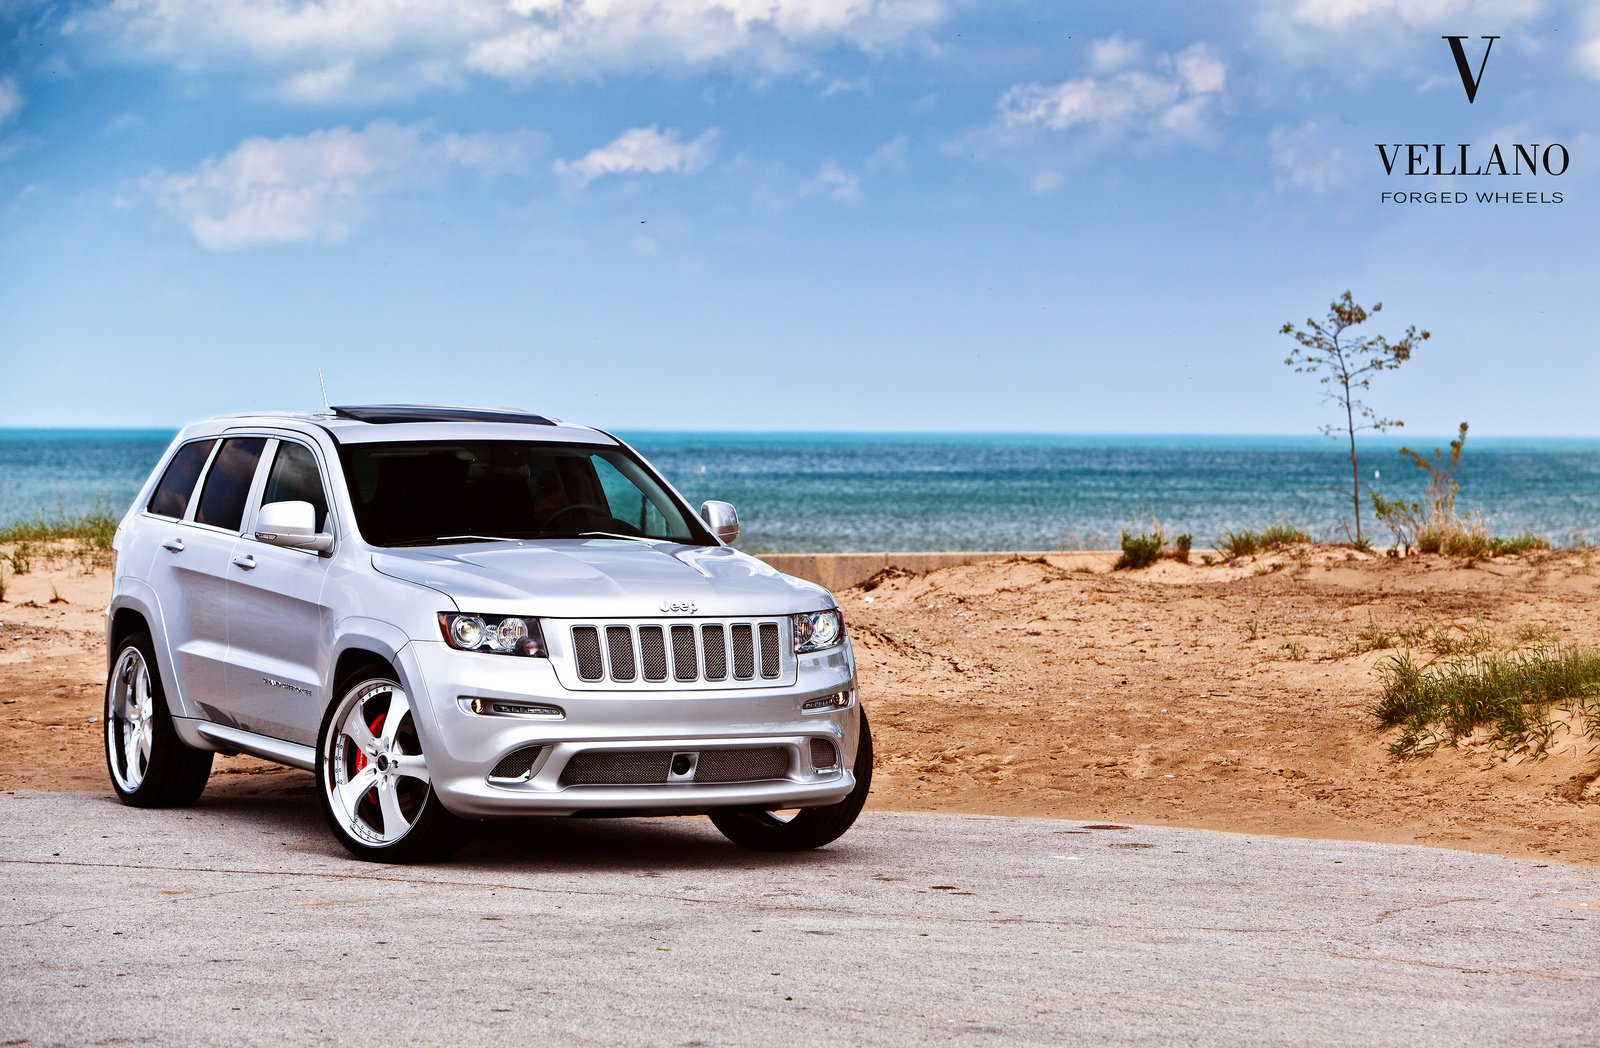 jeep grand cherokee srt8 grey vellano wheels tuning cars. Black Bedroom Furniture Sets. Home Design Ideas